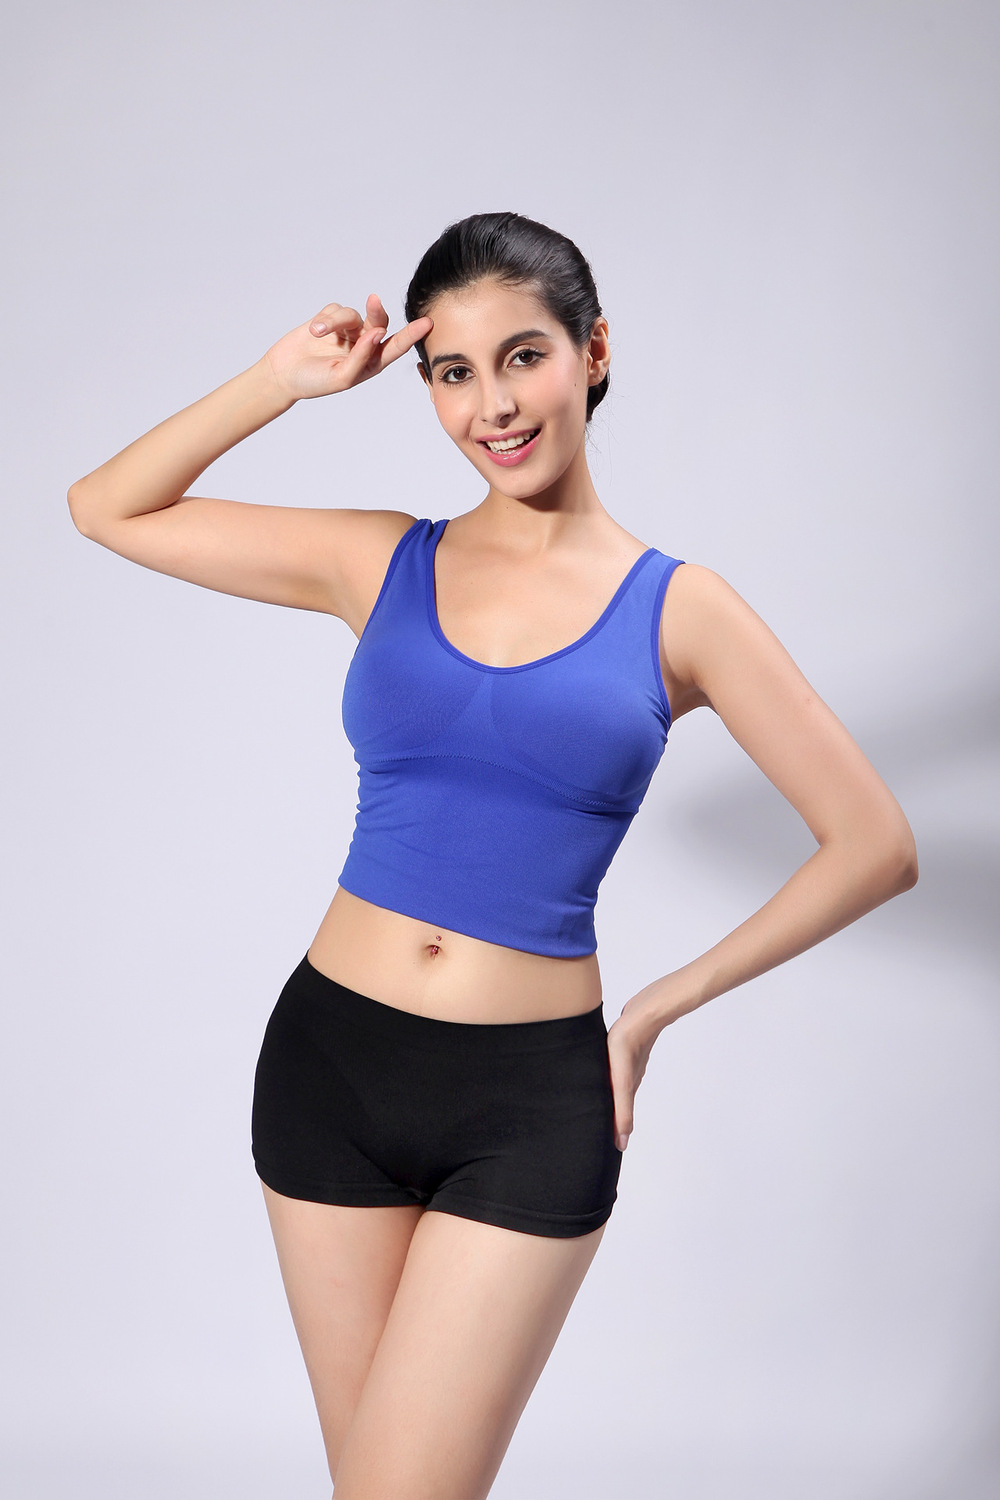 Find great deals on eBay for short tank top. Shop with confidence.